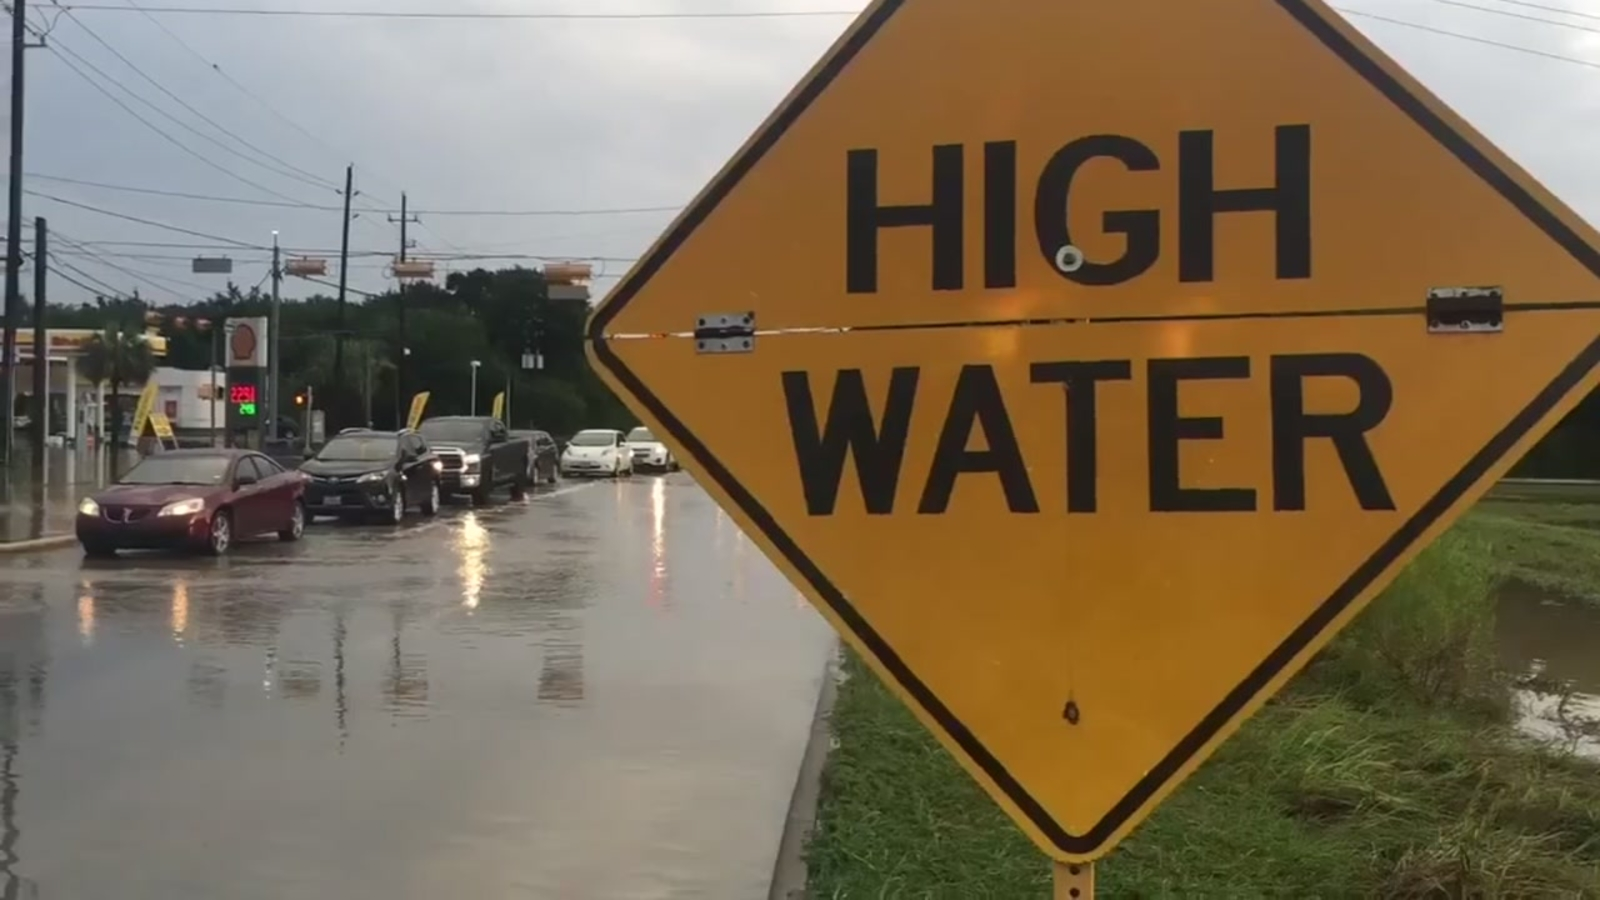 High Water Locations Houston Map High water locations reported on Houston area roads   ABC13 Houston